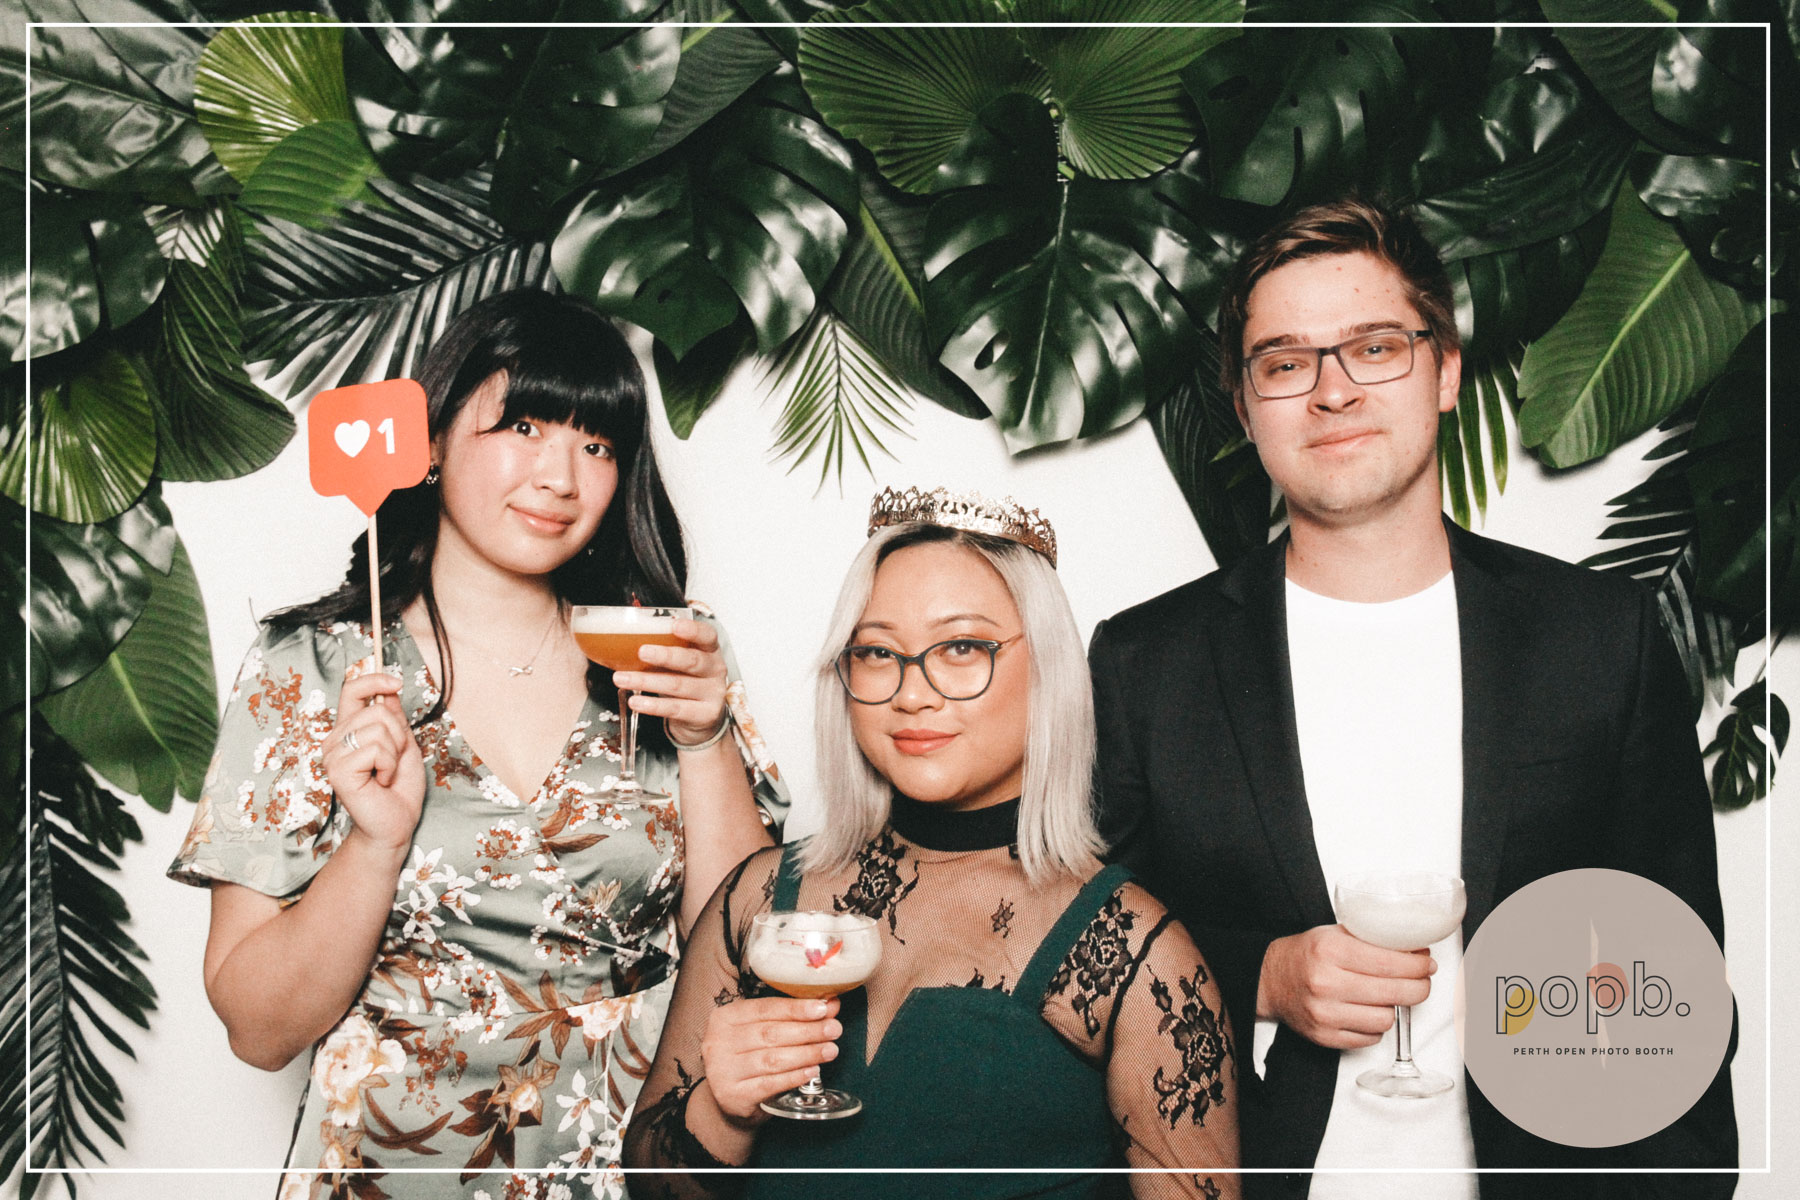 Darby, elaina + tim's 24th - pASSWORD: PROVIDED ON THE night- ALL LOWERCASE -